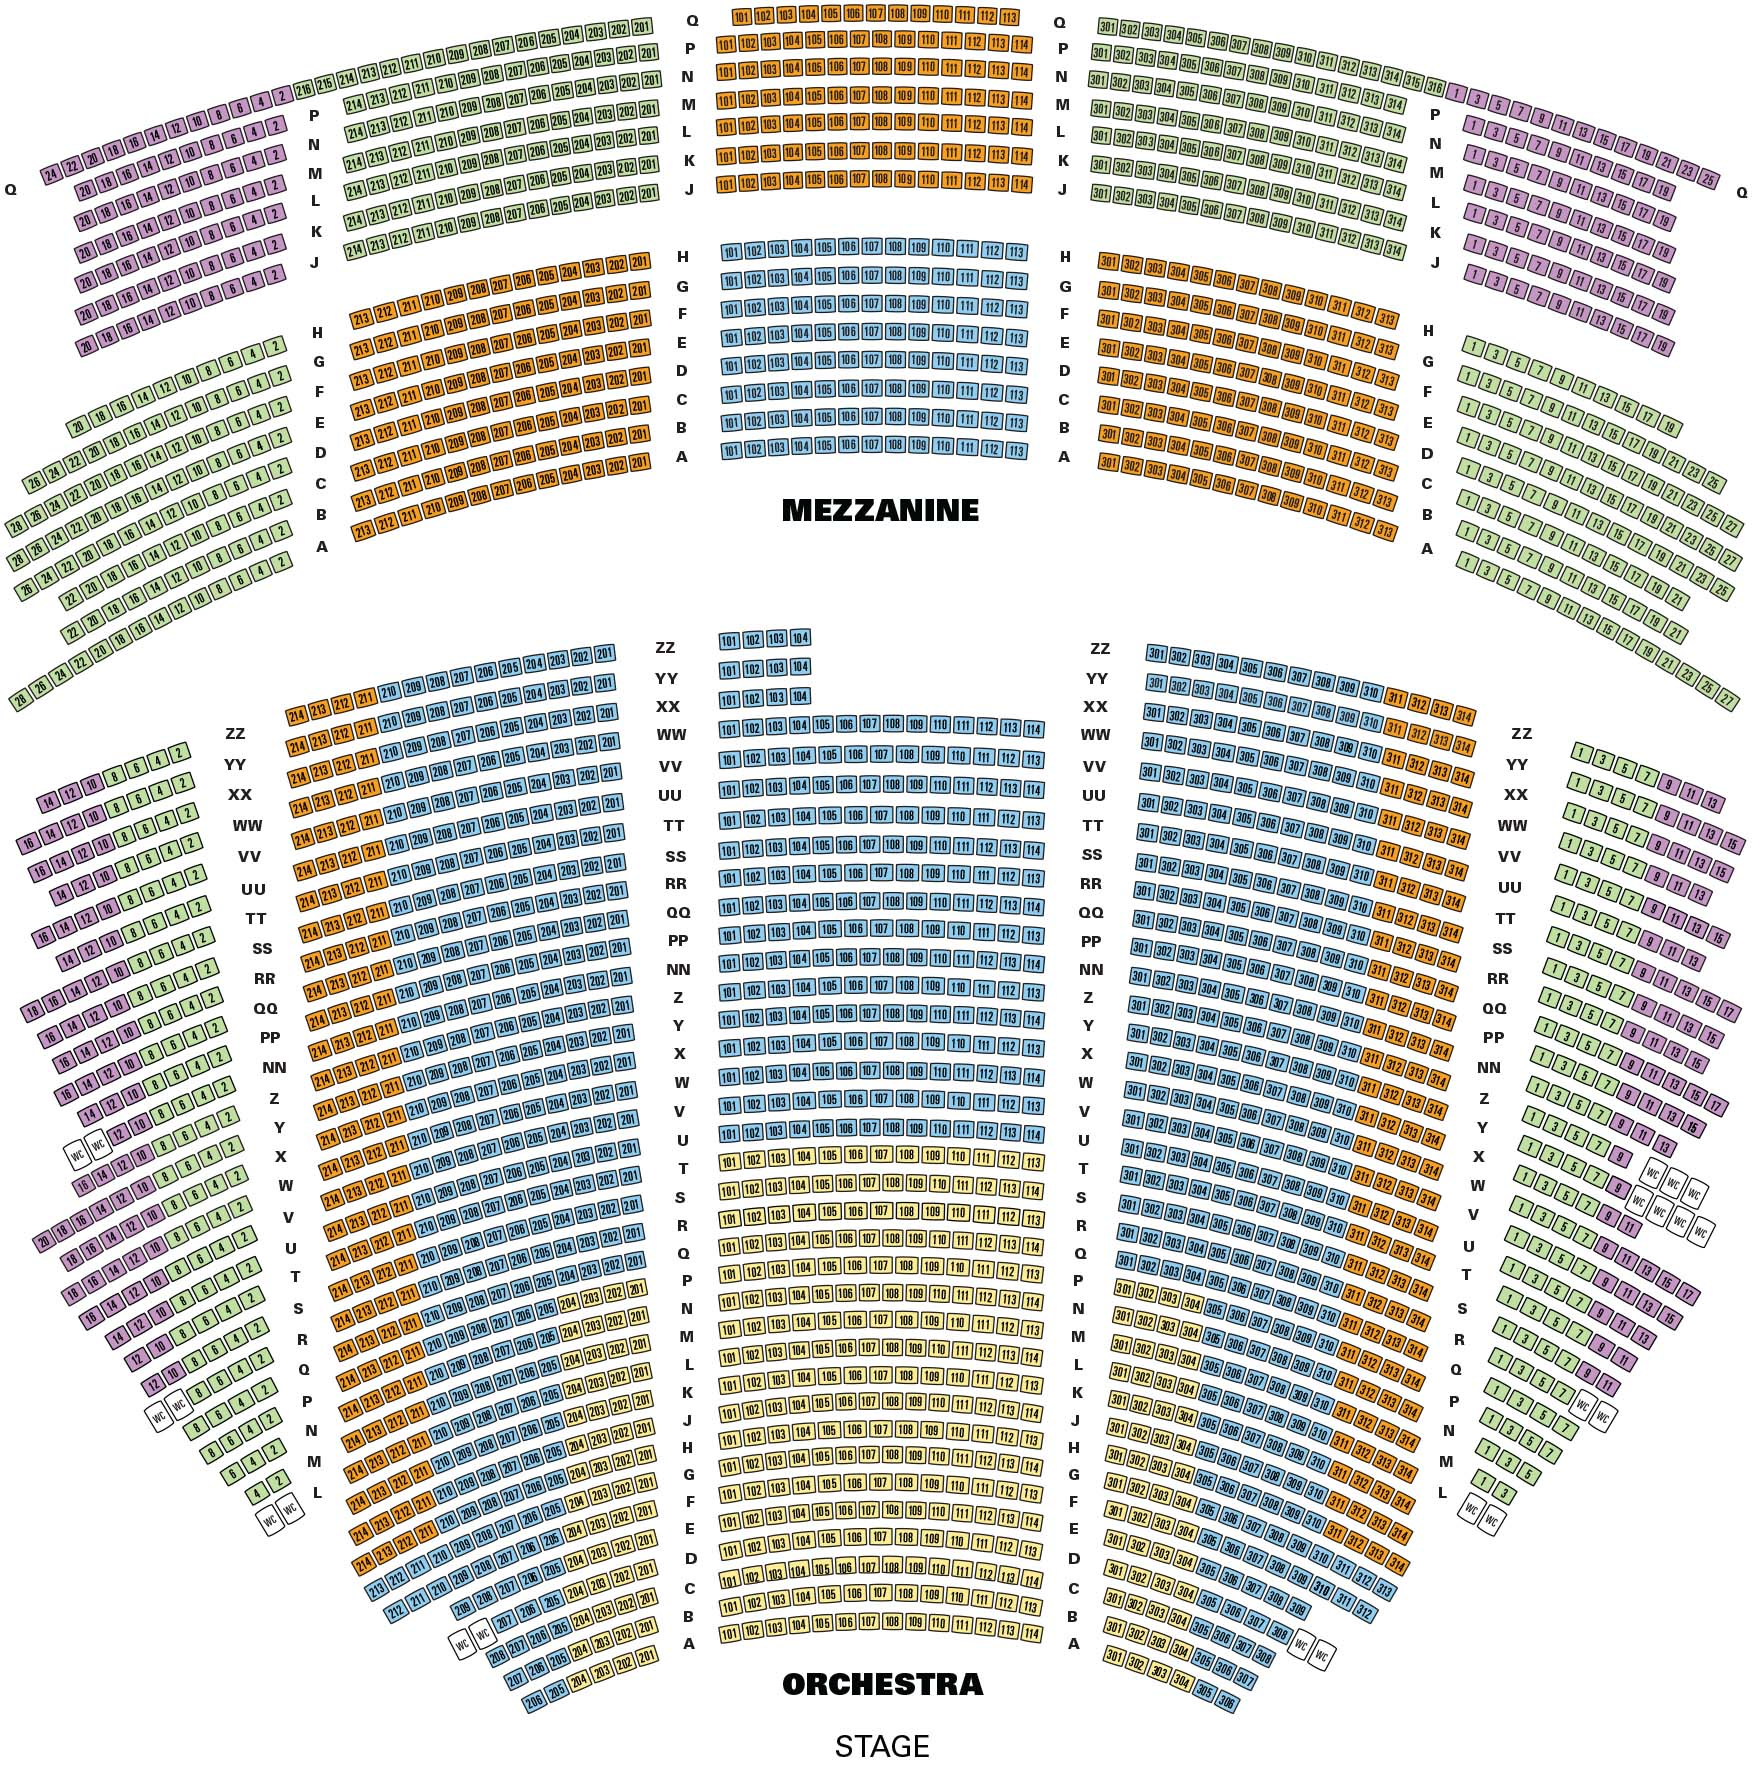 Hollywood Pantages Theatre Seating Map